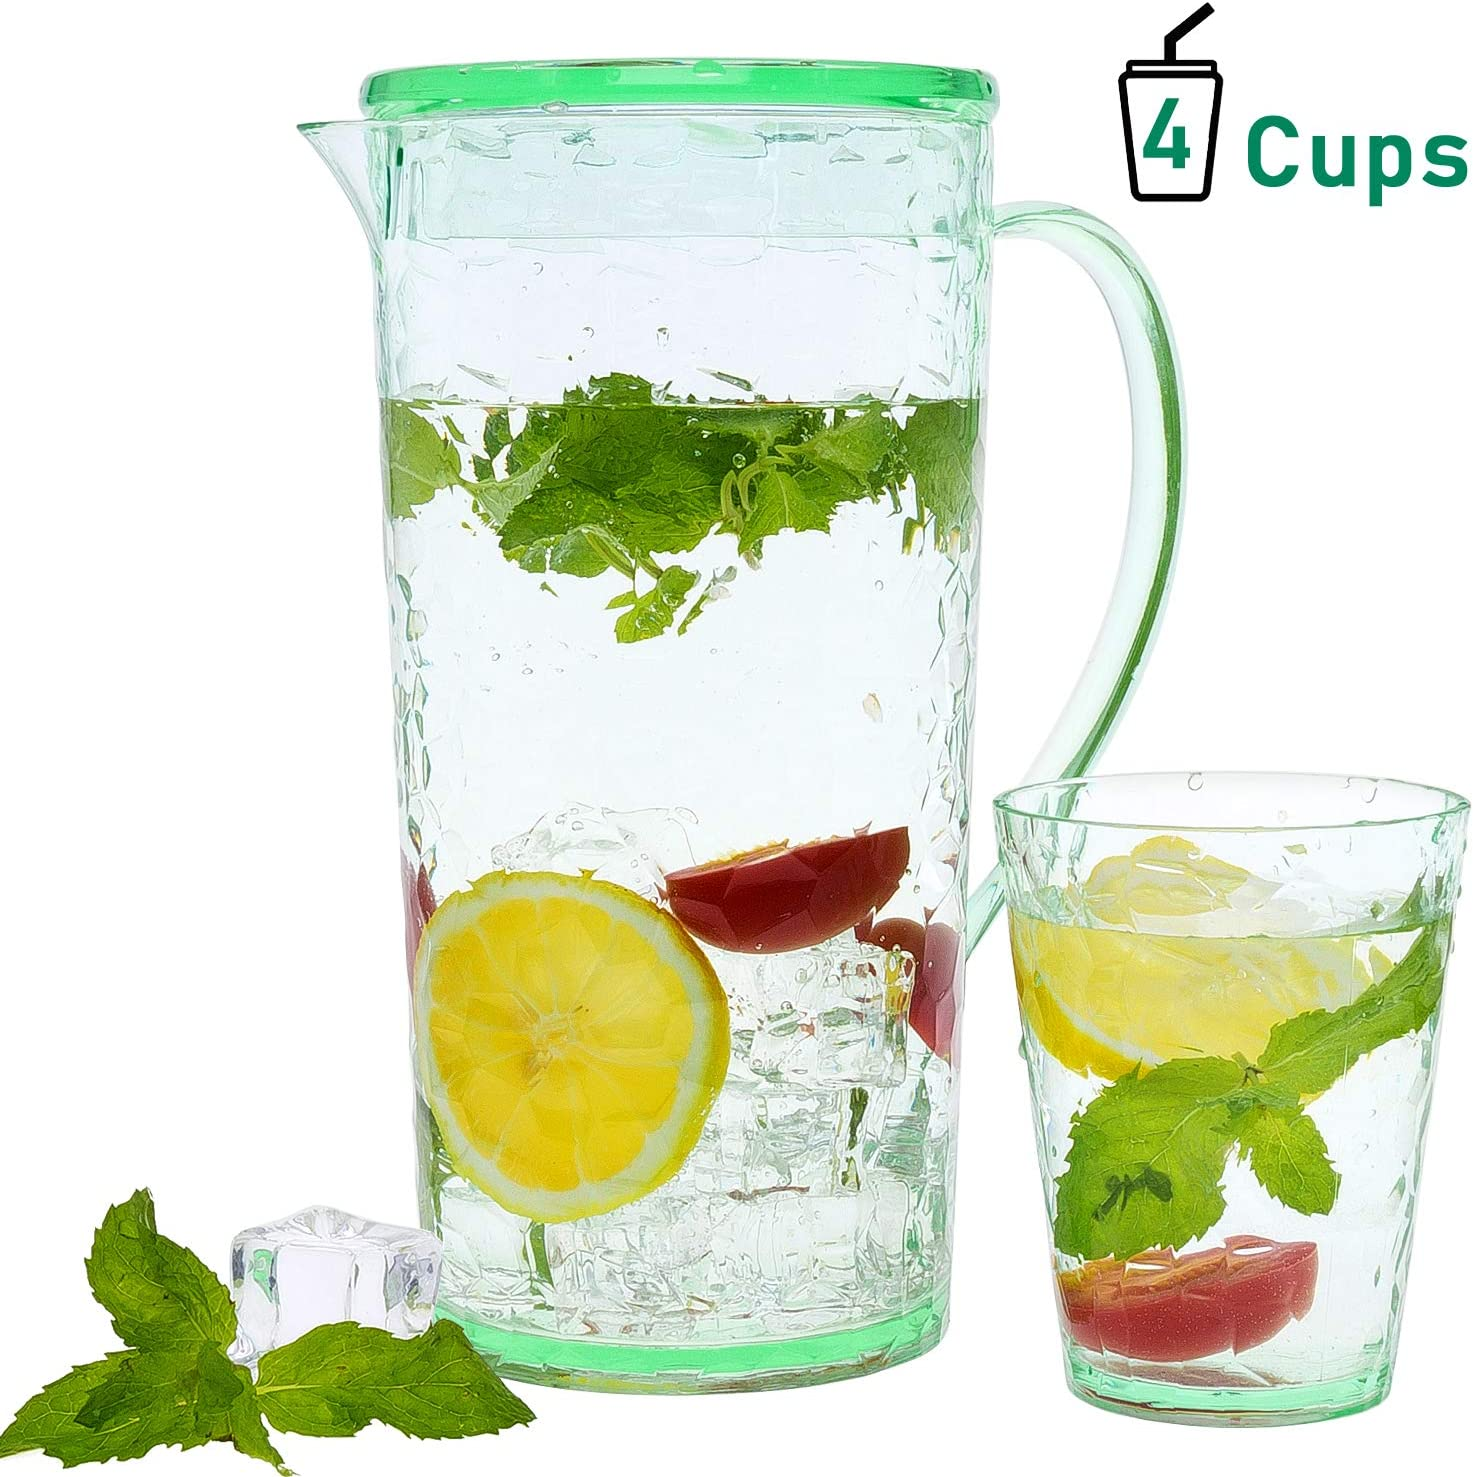 Green Water Jug with Lid Milk and Coffee Ulinek Plastic Pitcher with 4 Cups 1.6L Light-duty Shatterproof Water Pitcher Beverage Jugs for Warm Cold Juice Tea